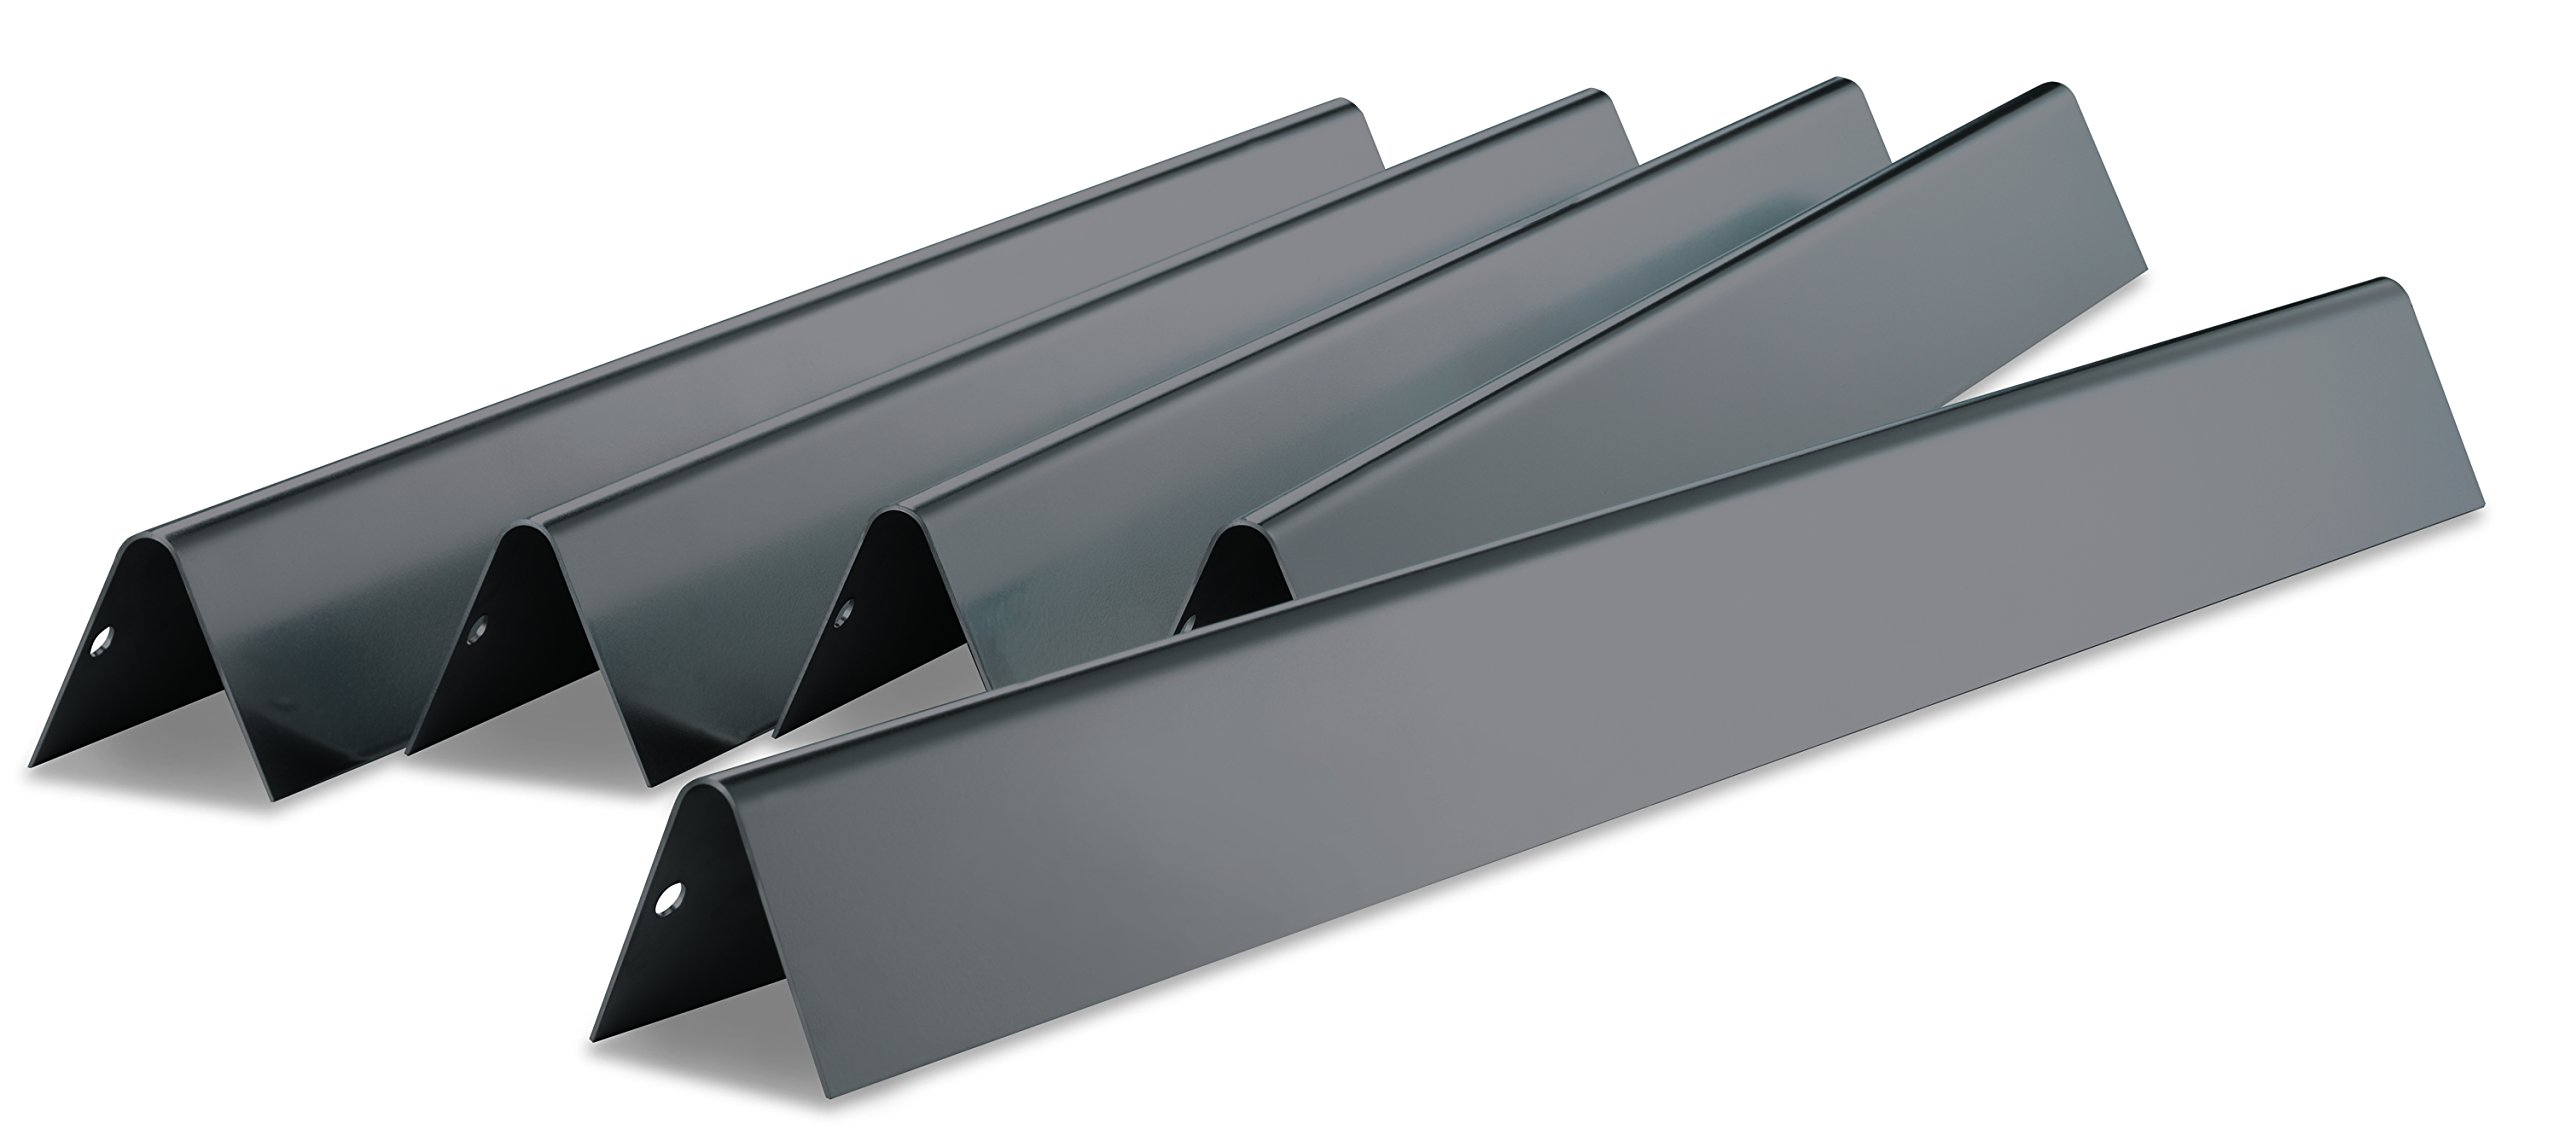 Weber 7539 Porcelain-Enameled Flavorizer Bars - Fits Genesis 300 Series gas grills with side-mounted control panel by Weber